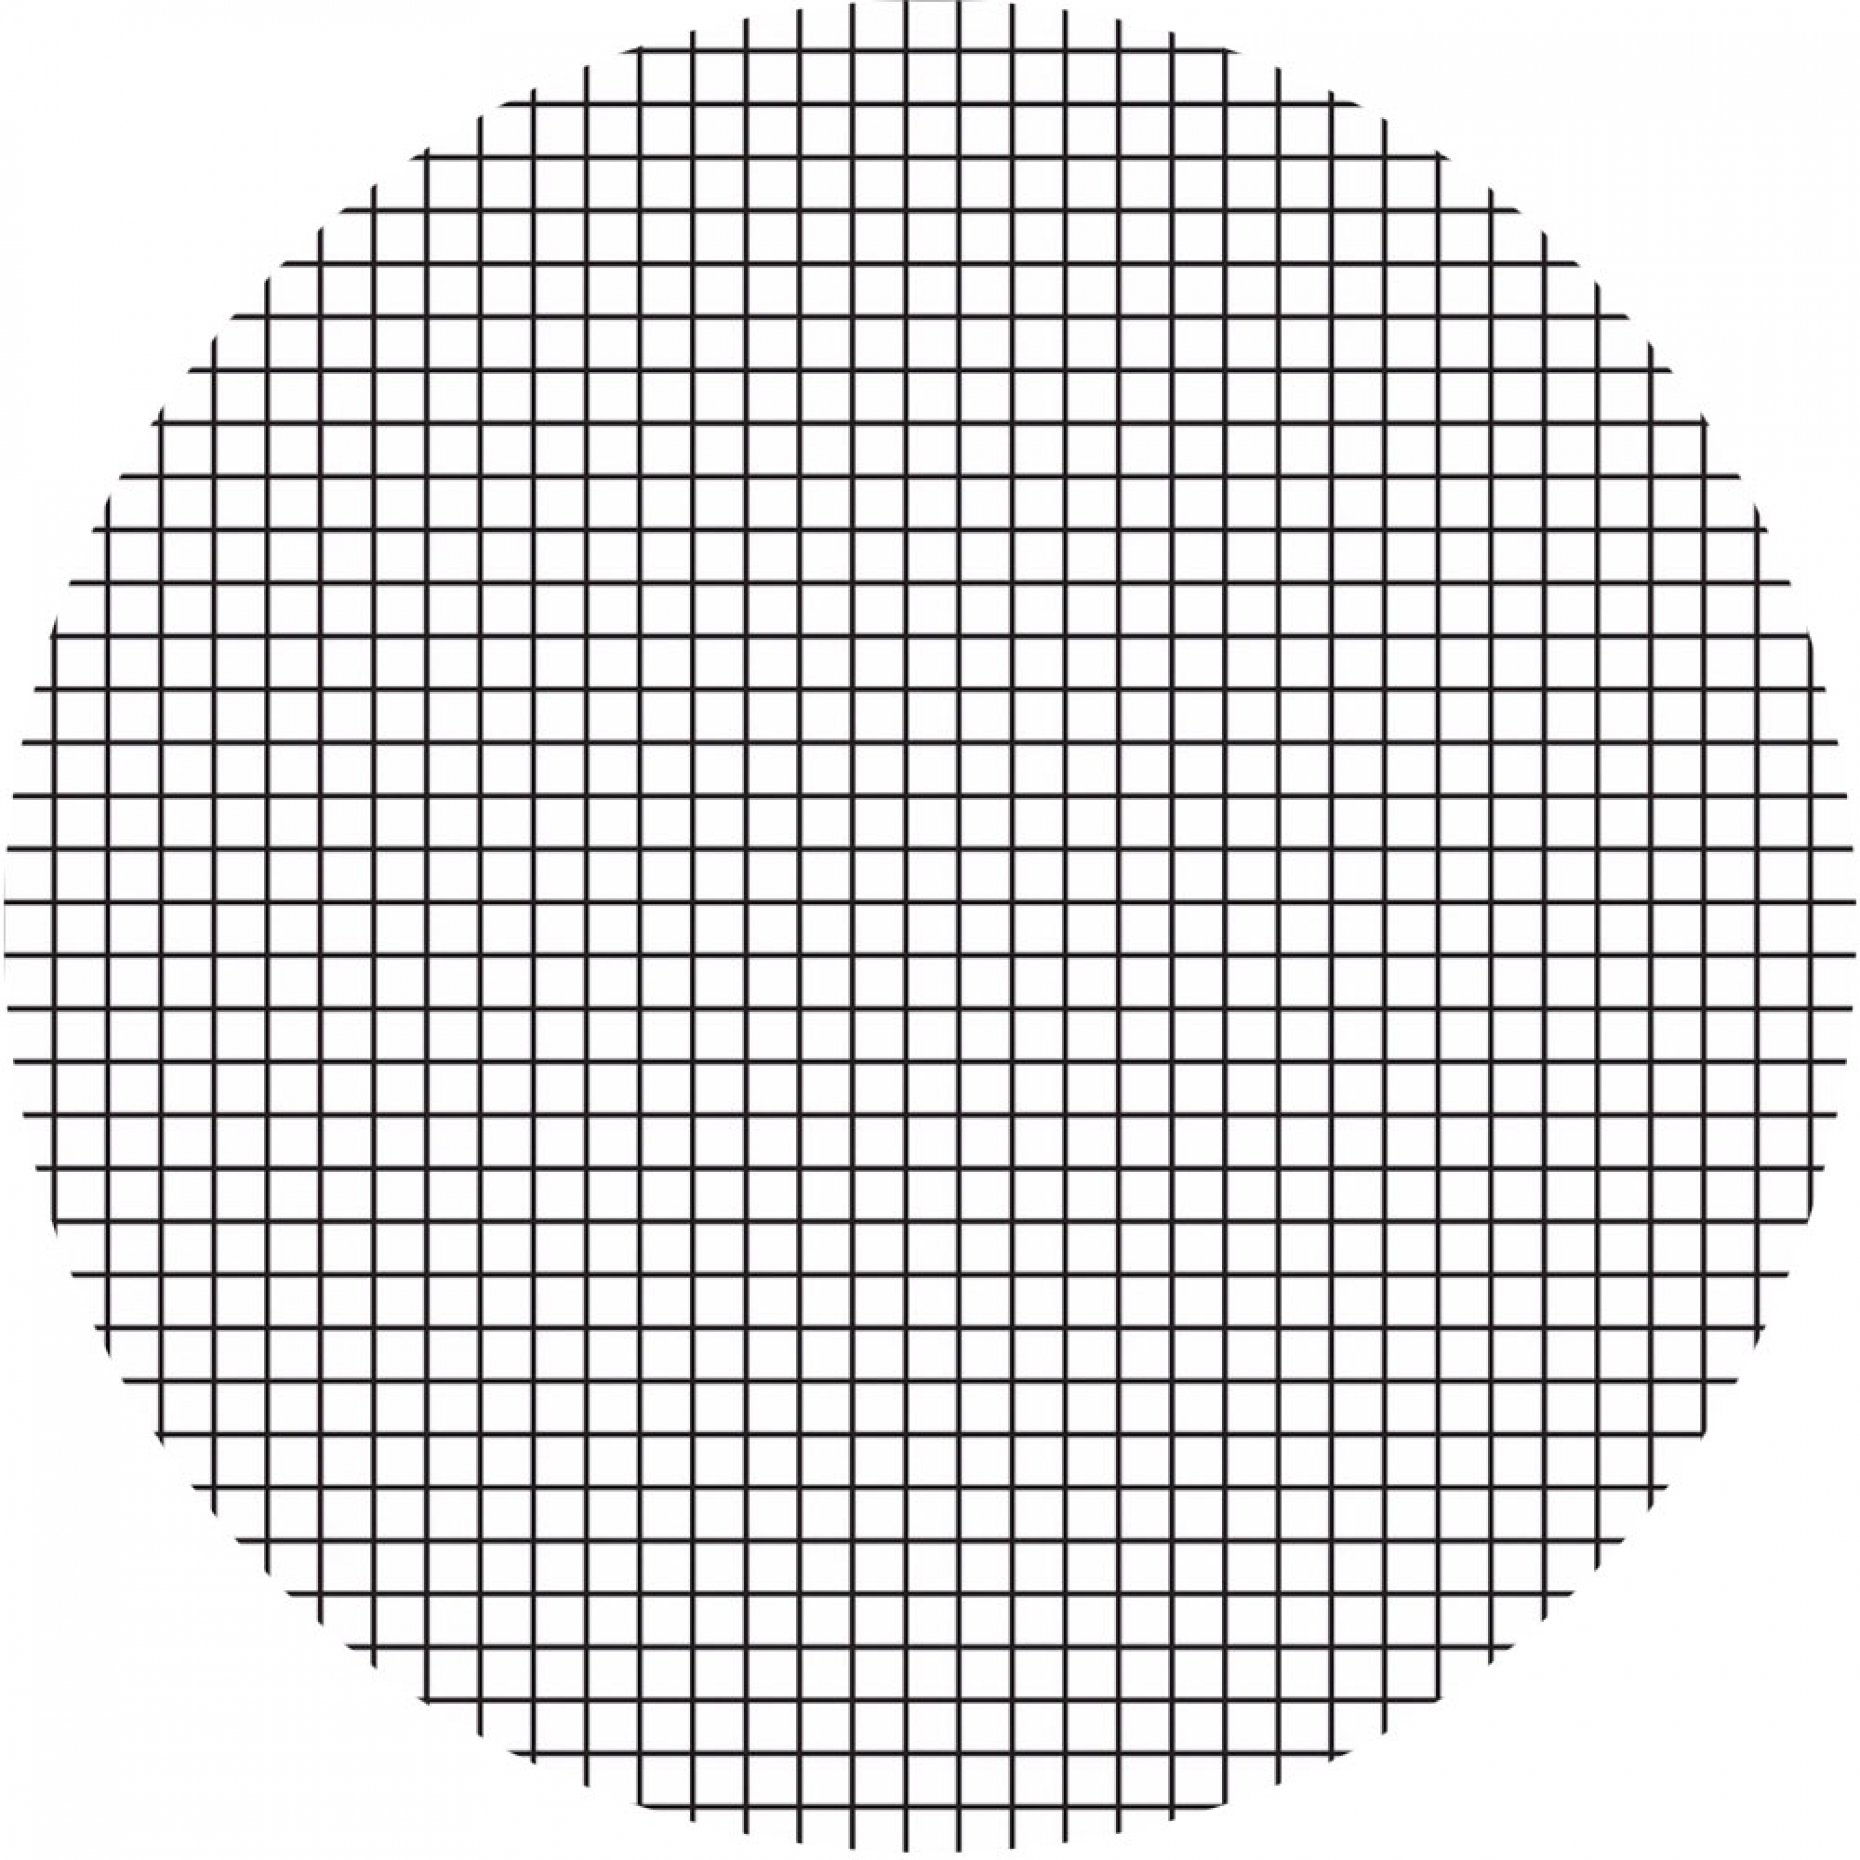 NE10 Net Grid 0.5mm Pitch Squares Pattern